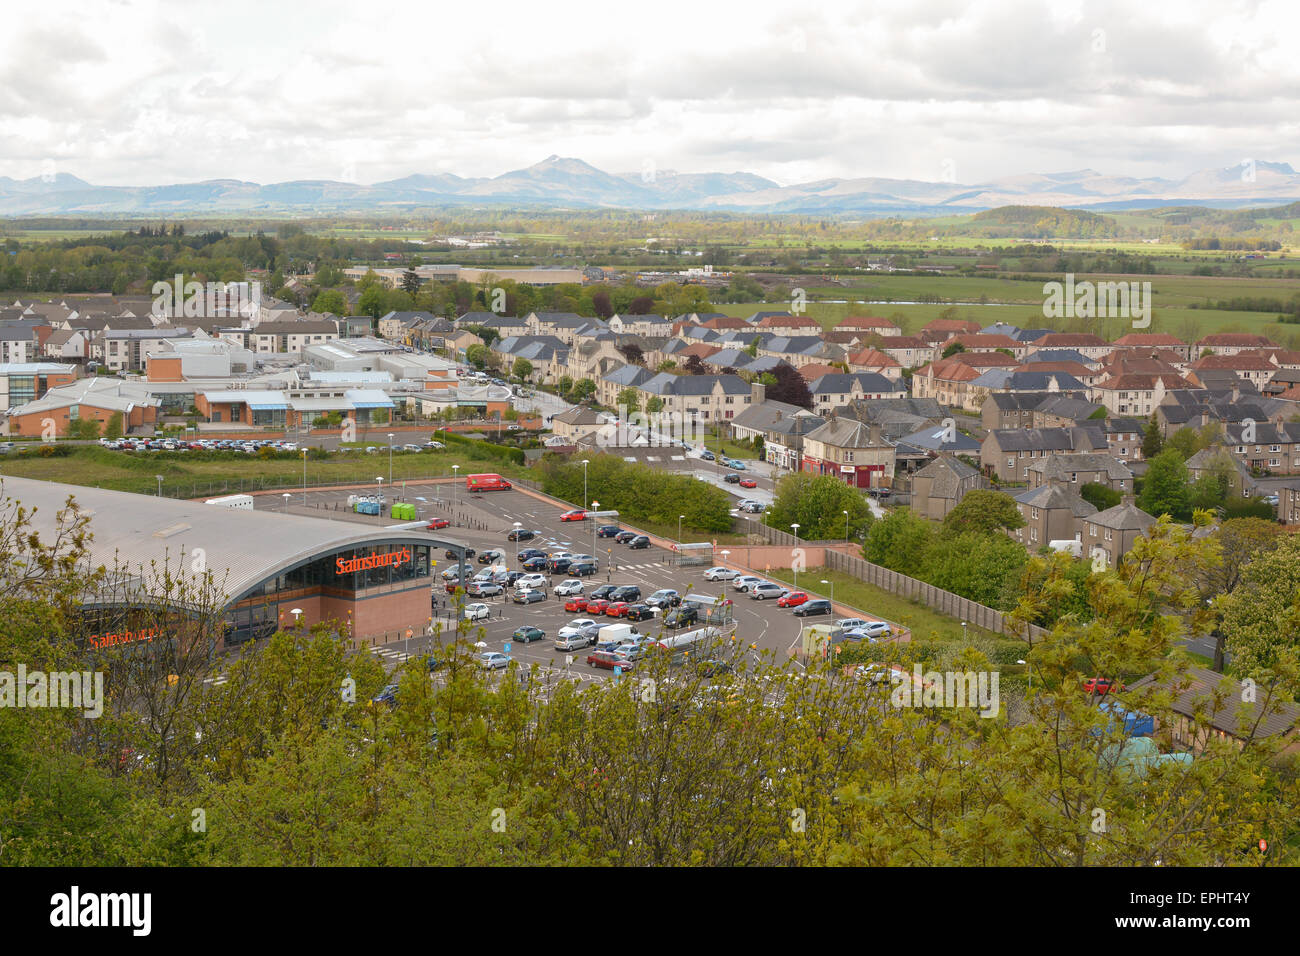 view of Raploch, regeneration - Sainsburys store and Ben Lomond and the Trossachs taken from Gowan Hill, Stirling, - Stock Image